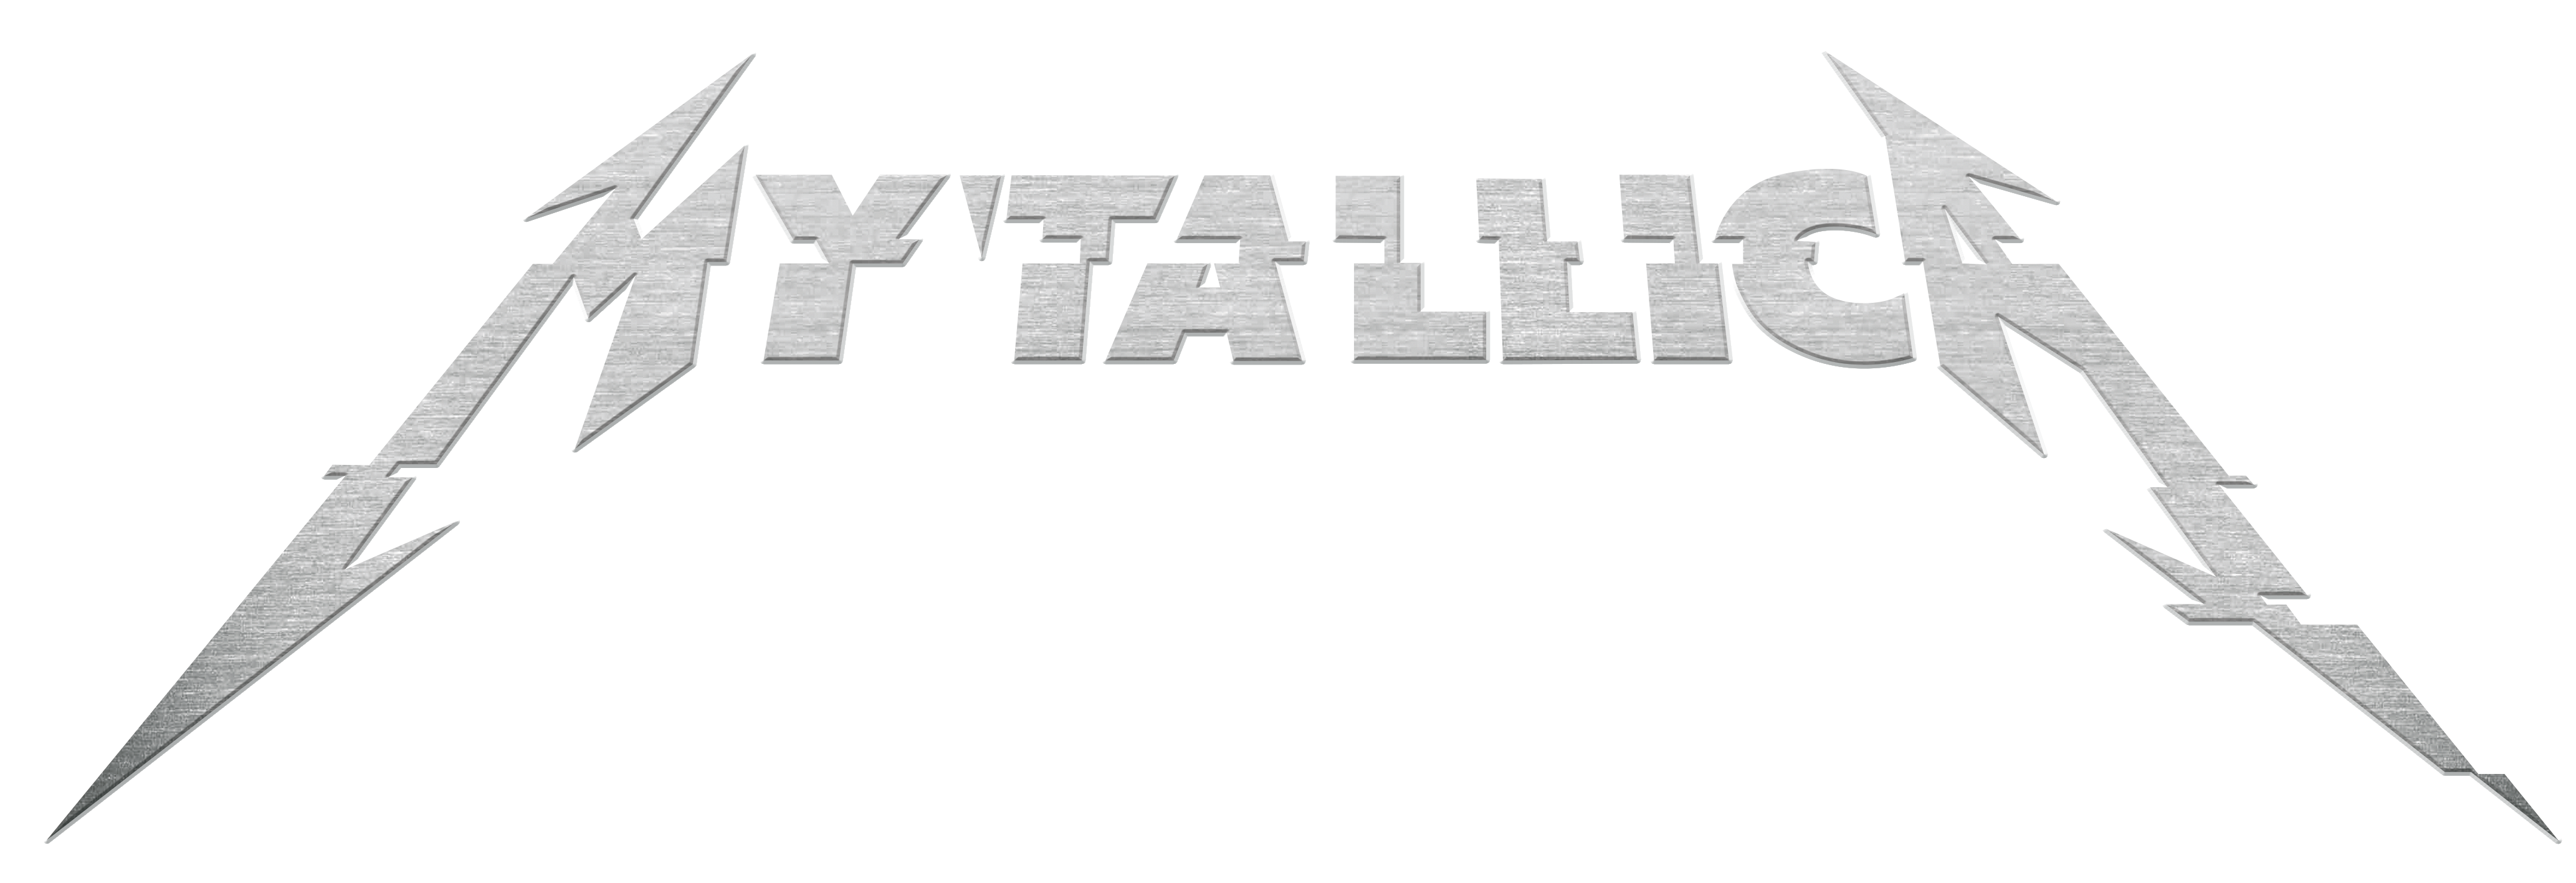 metallica-tribute-band-mytallica-logo-silver-steel